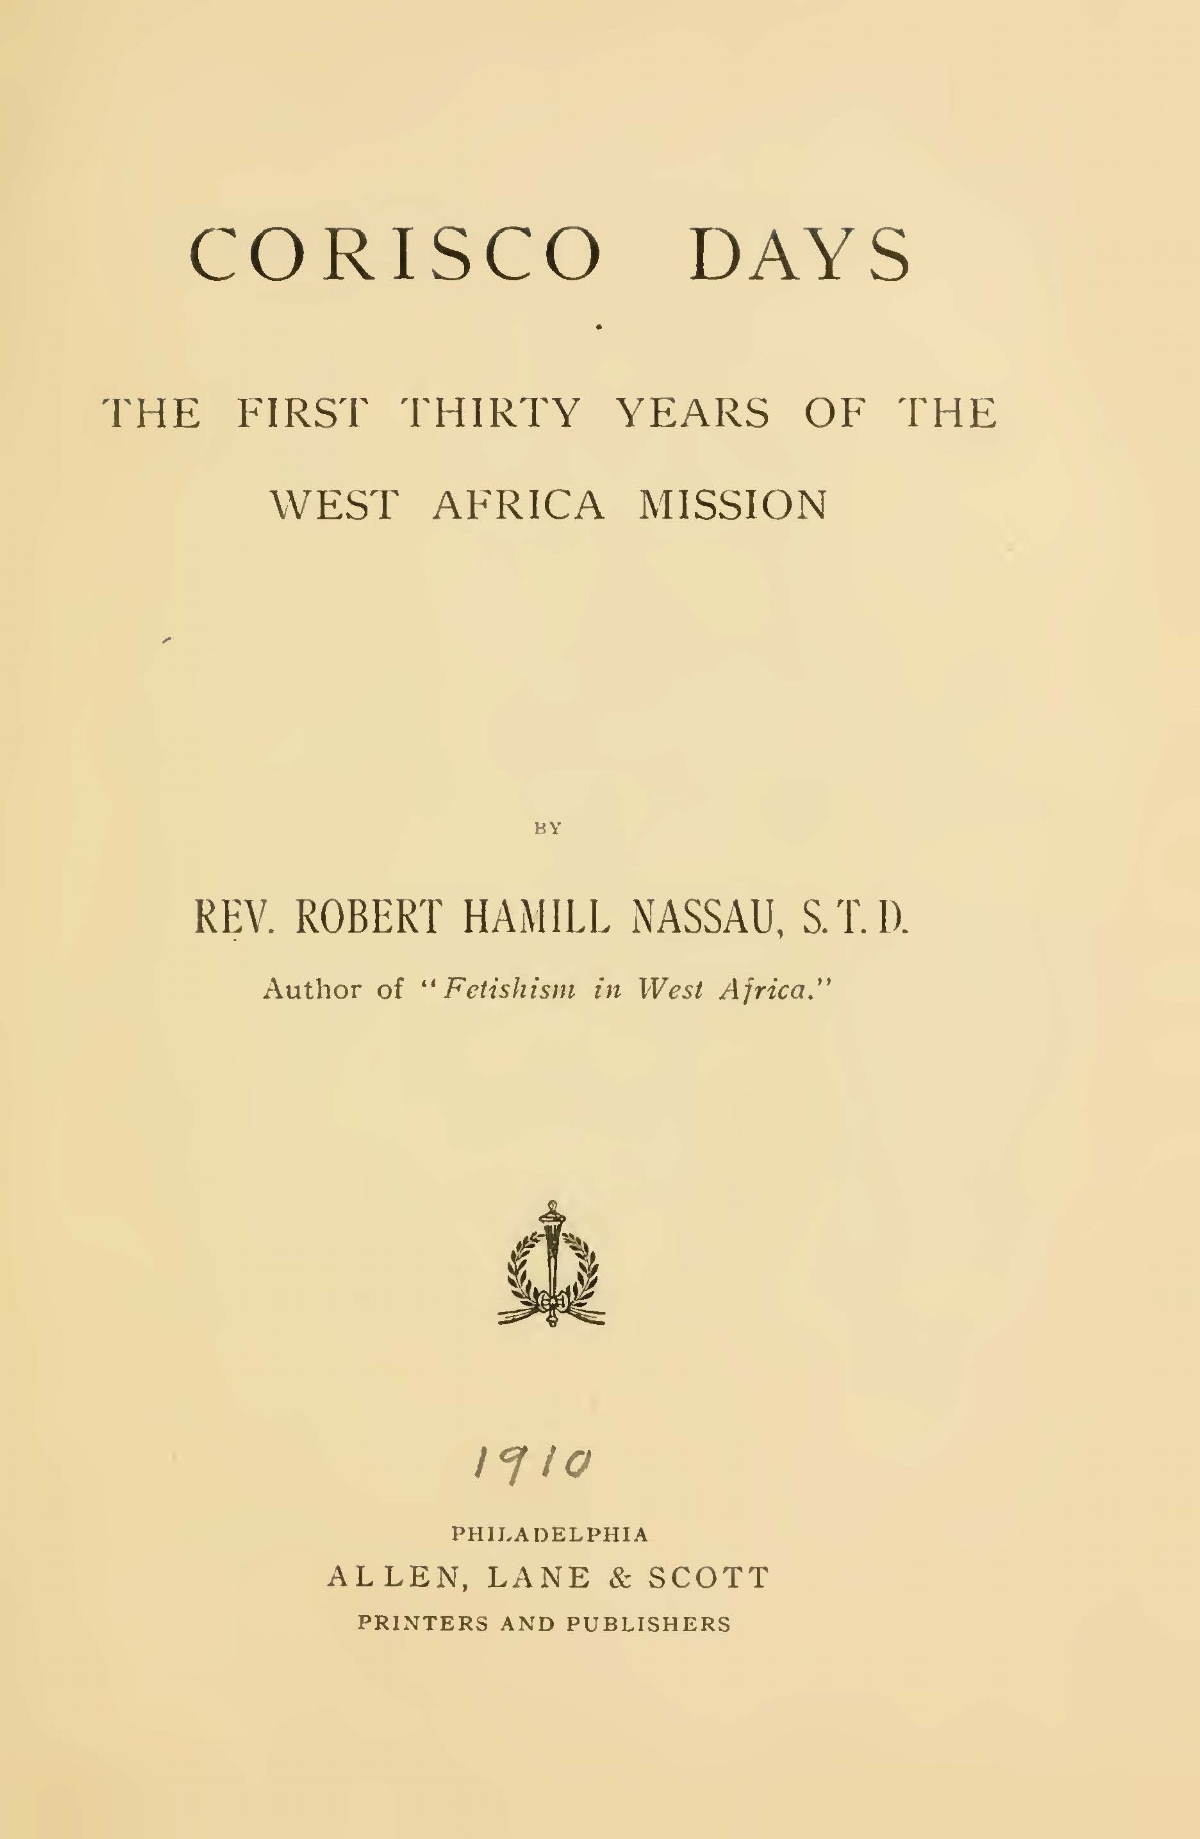 Nassau, Robert Hamill, Corisco Days Title Page.jpg